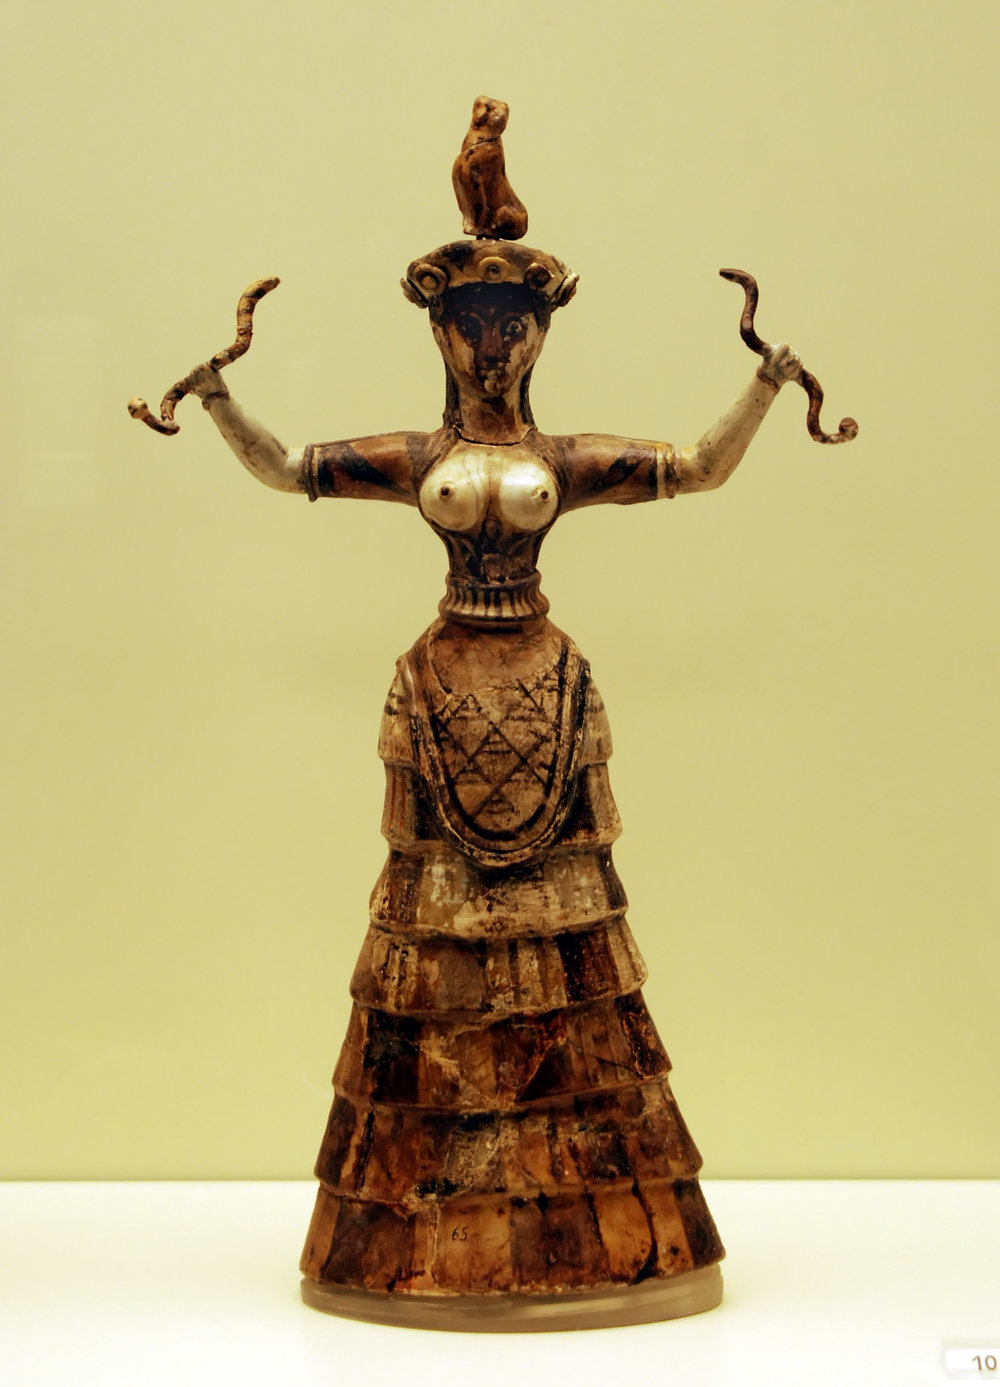 Cretian Snake Goddess.  Creative Commons Attribution 2.0 Generic license.